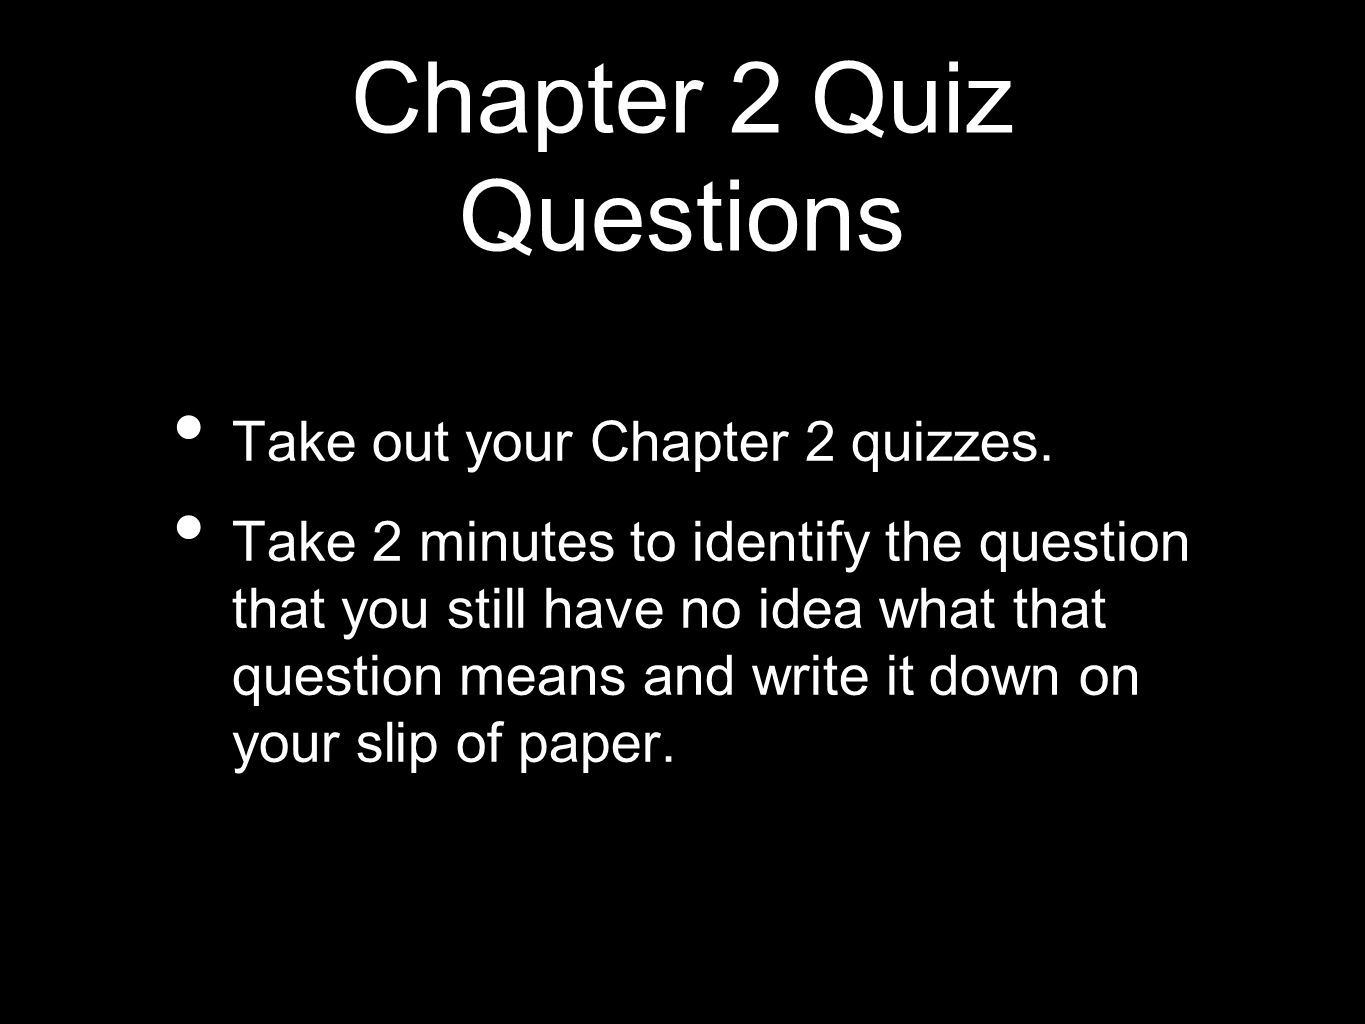 Chapter 2 Quiz Questions